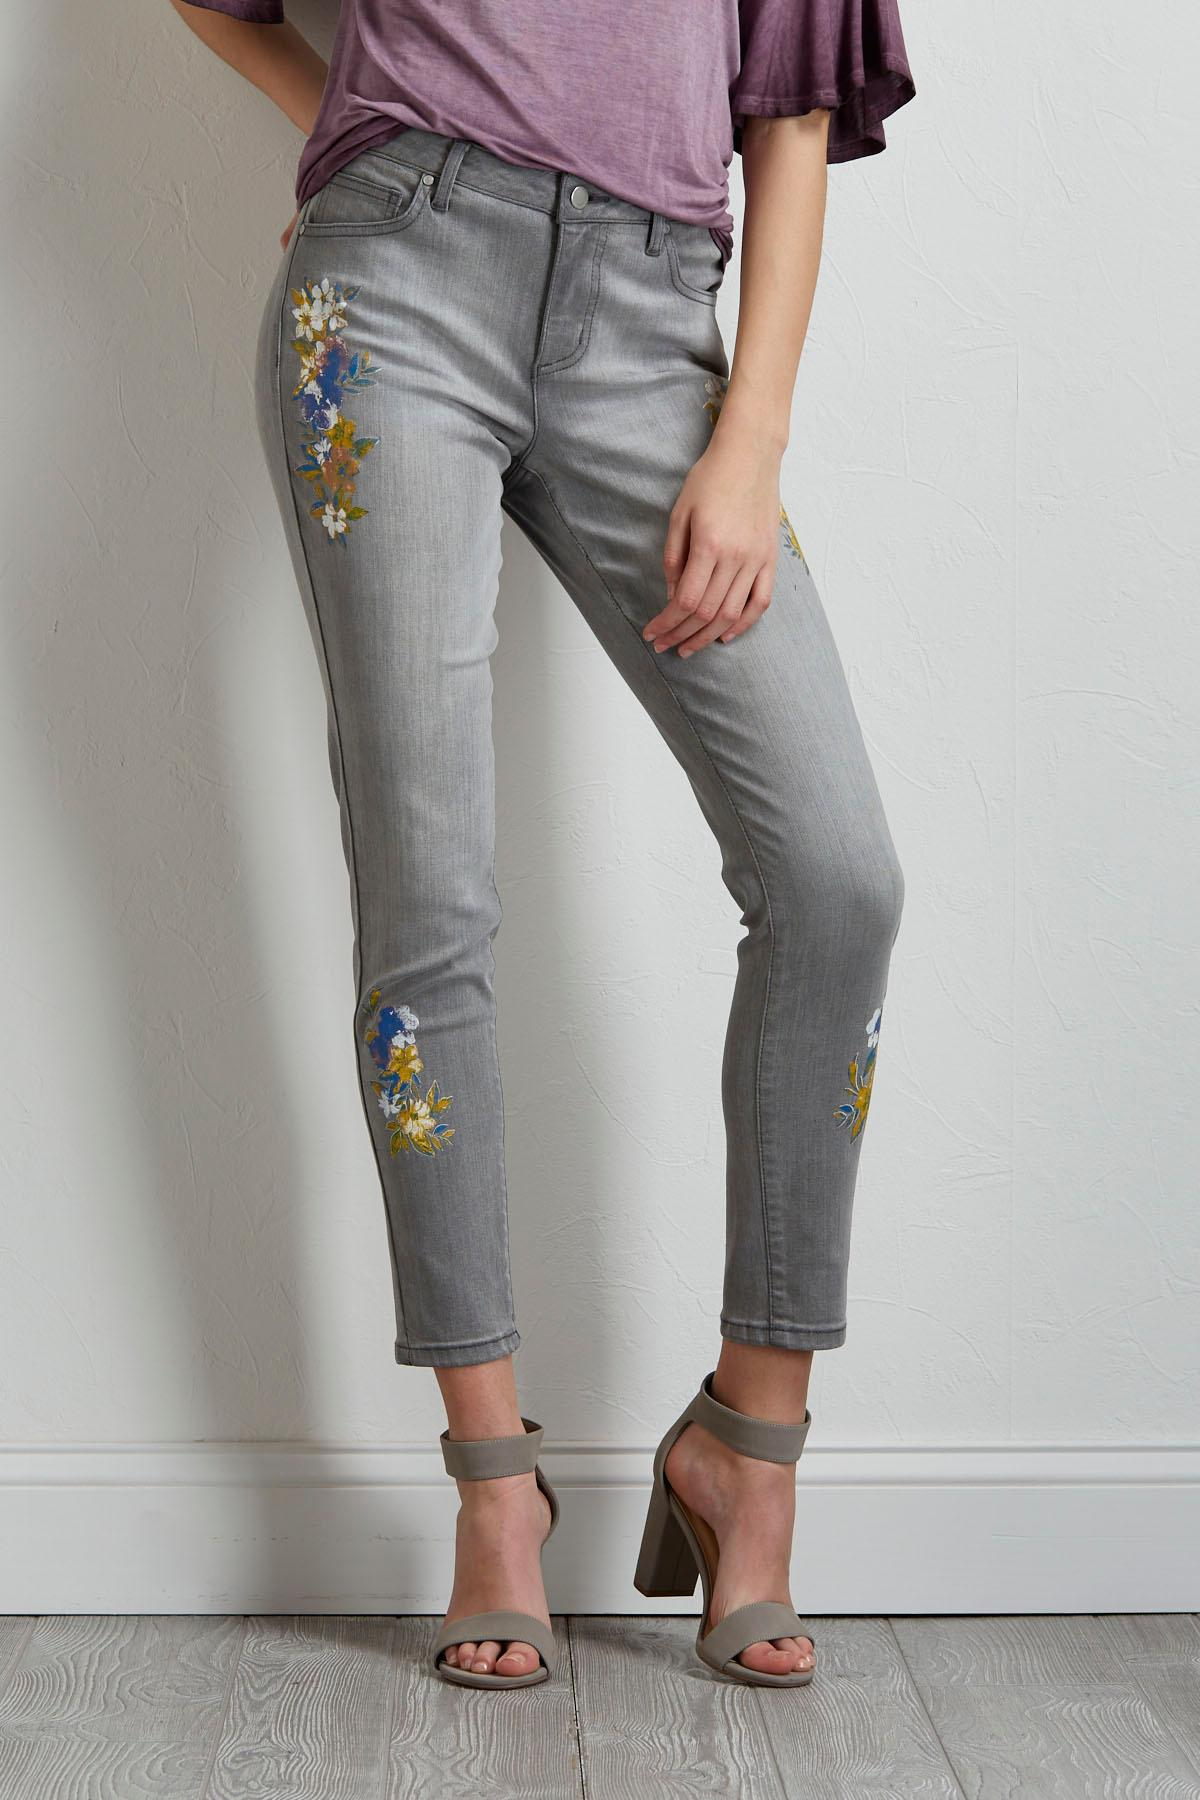 Painted Floral Skinny Jeans